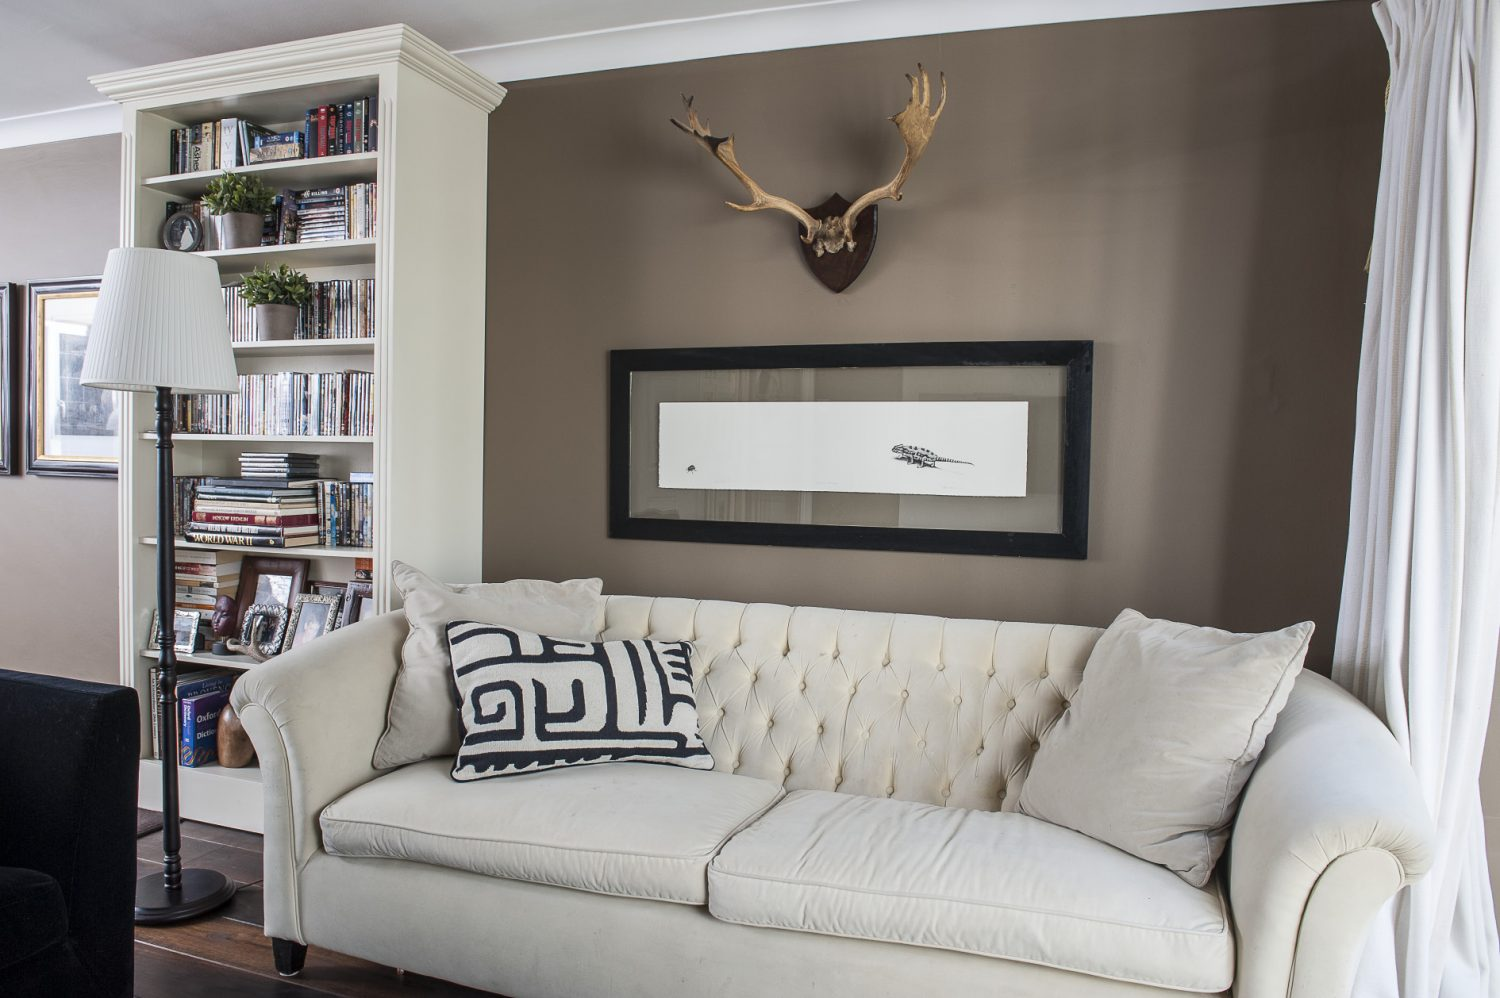 In the children's room sofas – one stone, the other black – lounge around a huge TV. On the wall opposite is a pair of antlers and a great wildlife print by one of the couple's favourite artists, South African John Moore